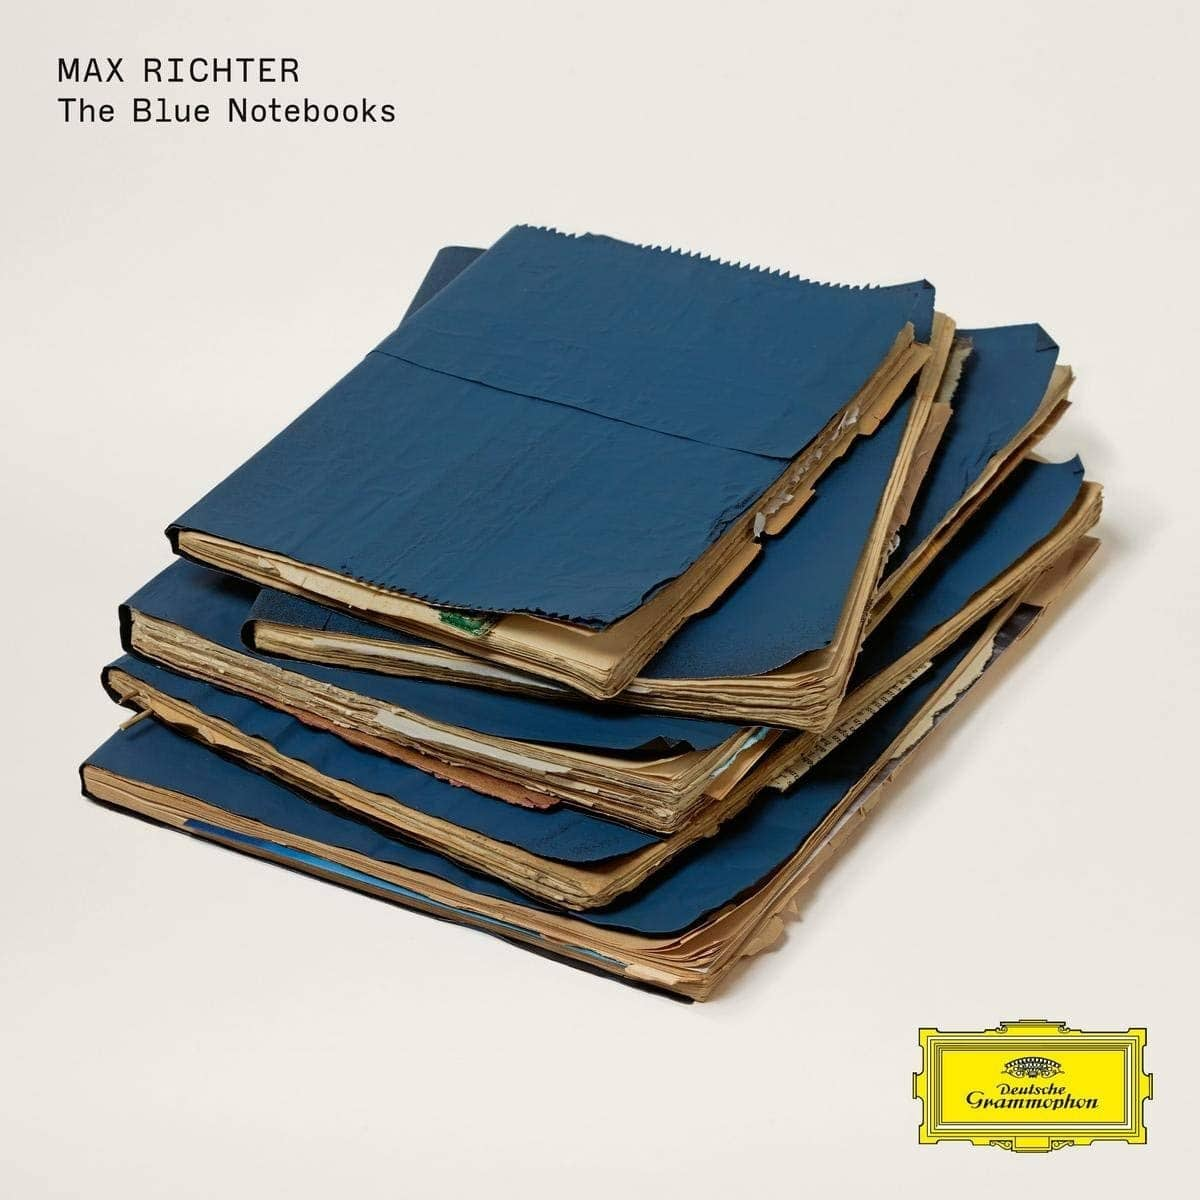 Max Richter - the Blue Notebooks - 2 CD set lowest price ever at Amazon $16.86